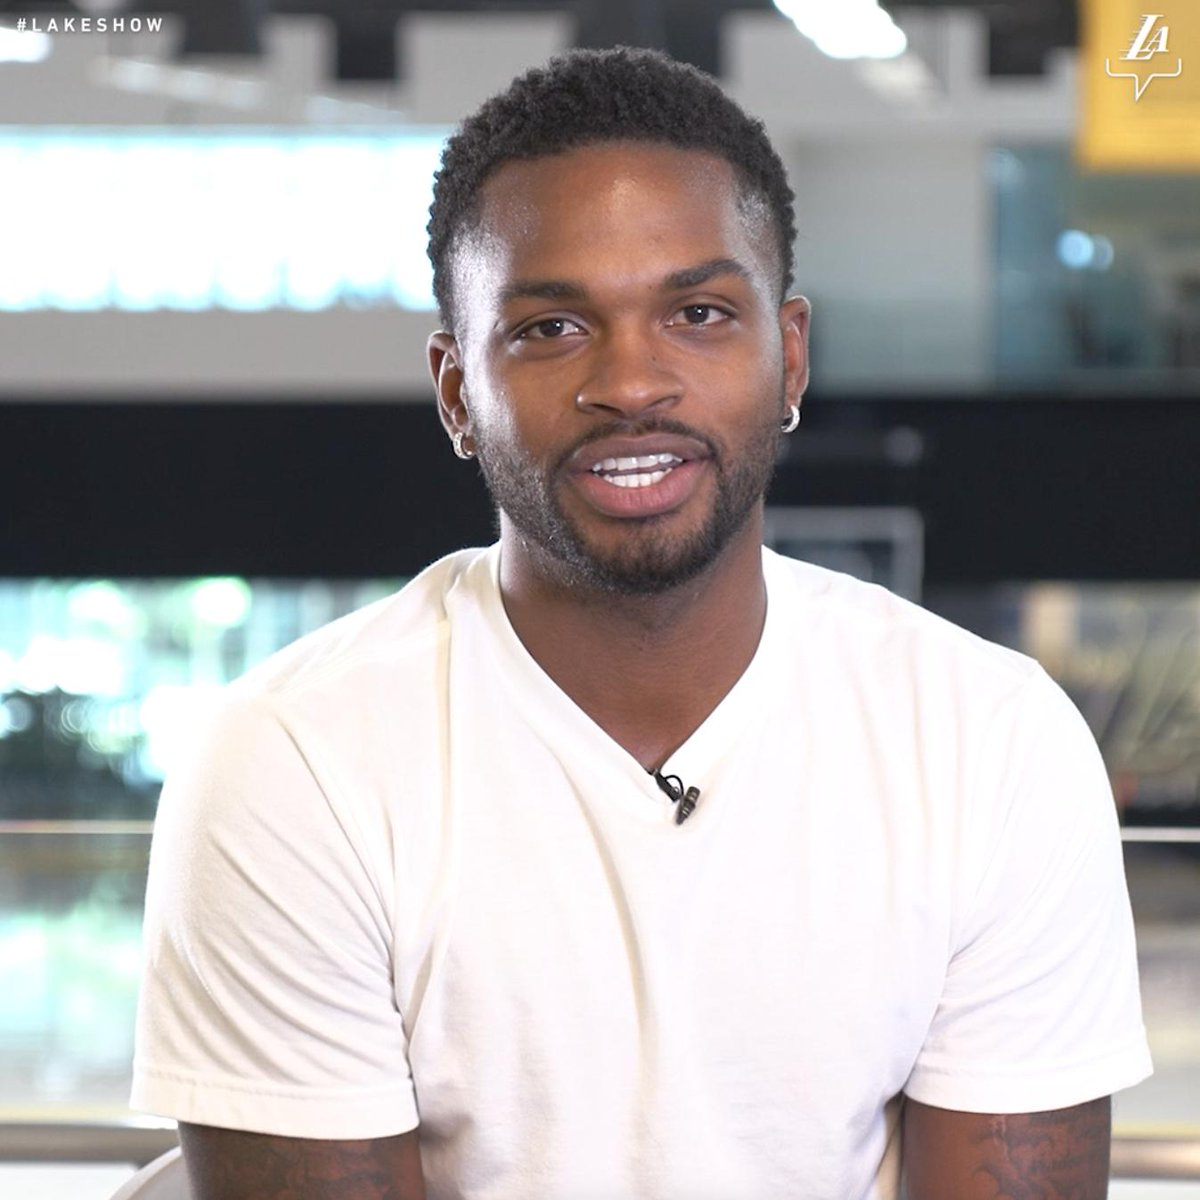 'When I got the call, there was one goal in mind, and that's to win a championship.' - @troydaniels